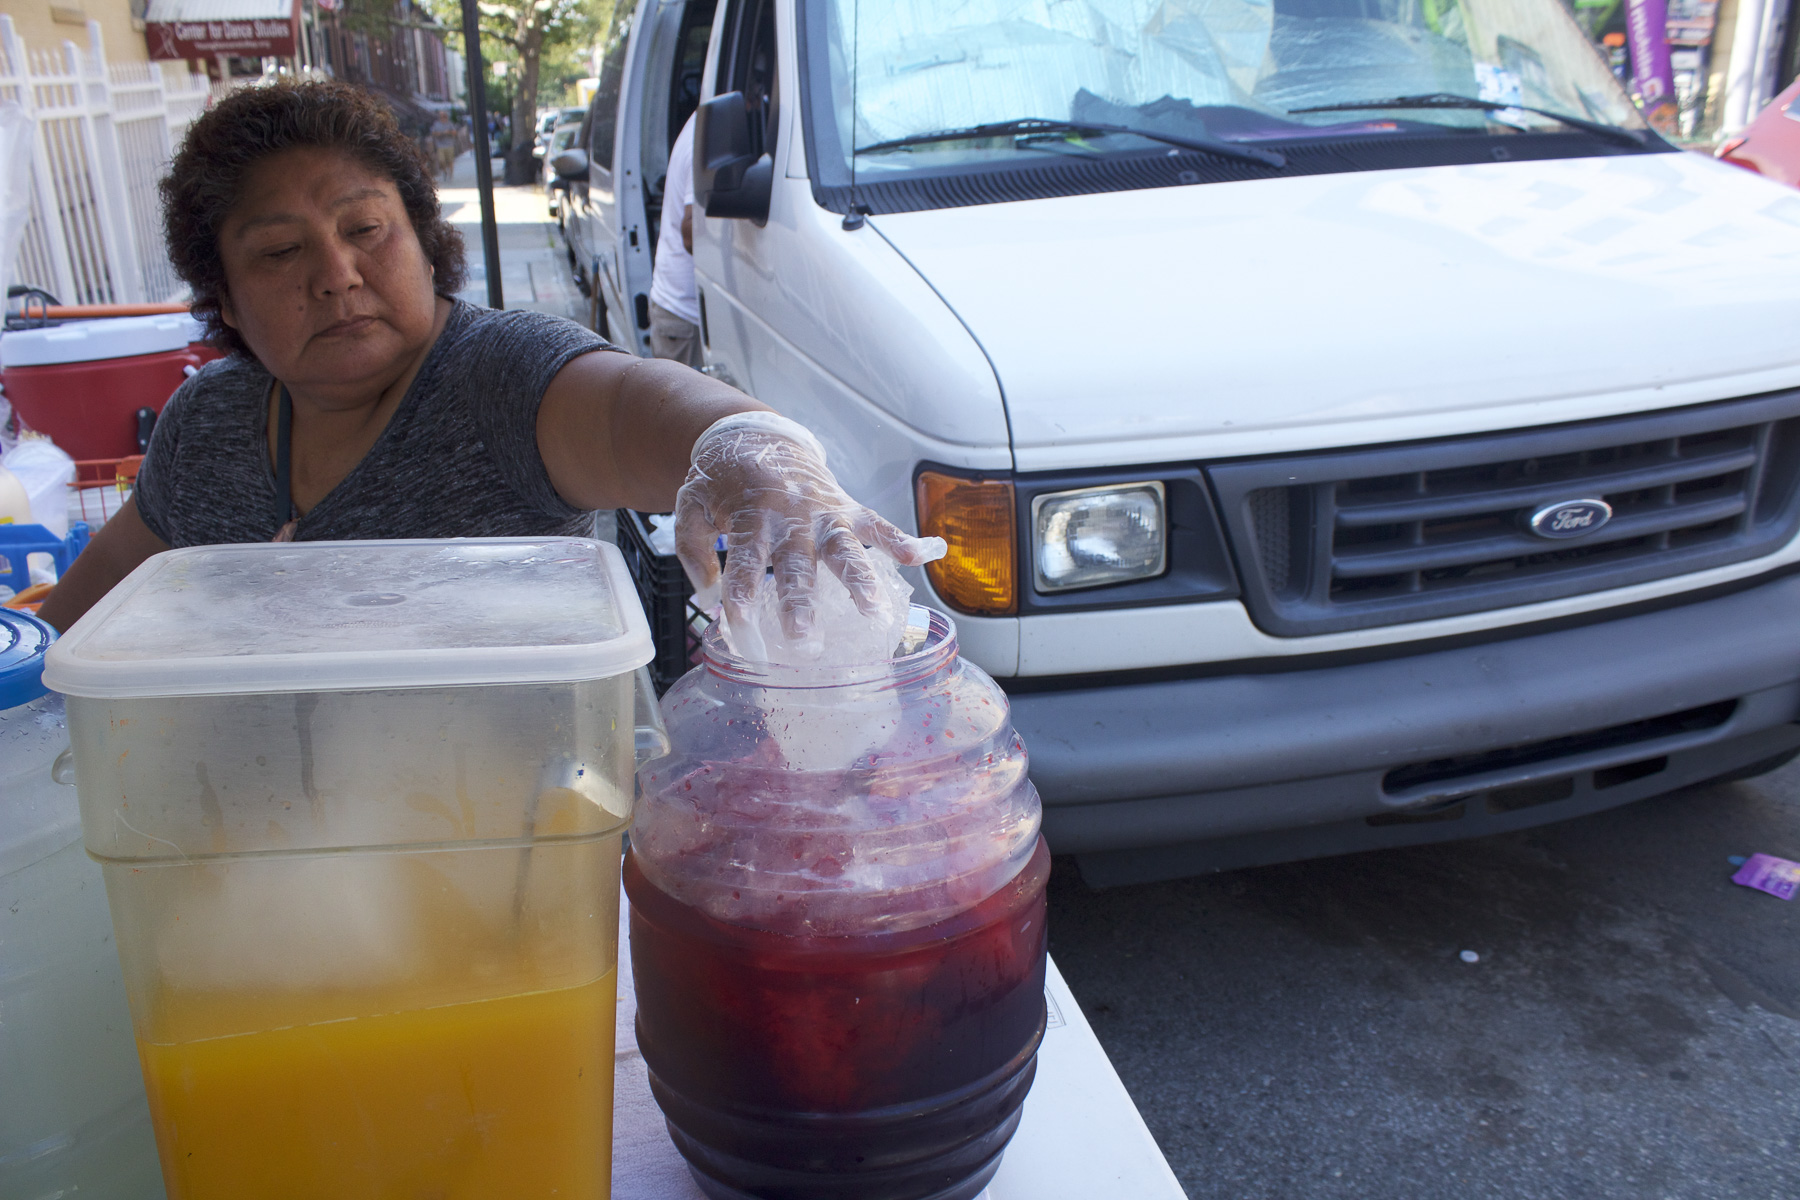 Teodosia putting the chunks of ice she cut into the jamaica on a hot day in Sunset Park, Brooklyn. August 22nd, 2017.